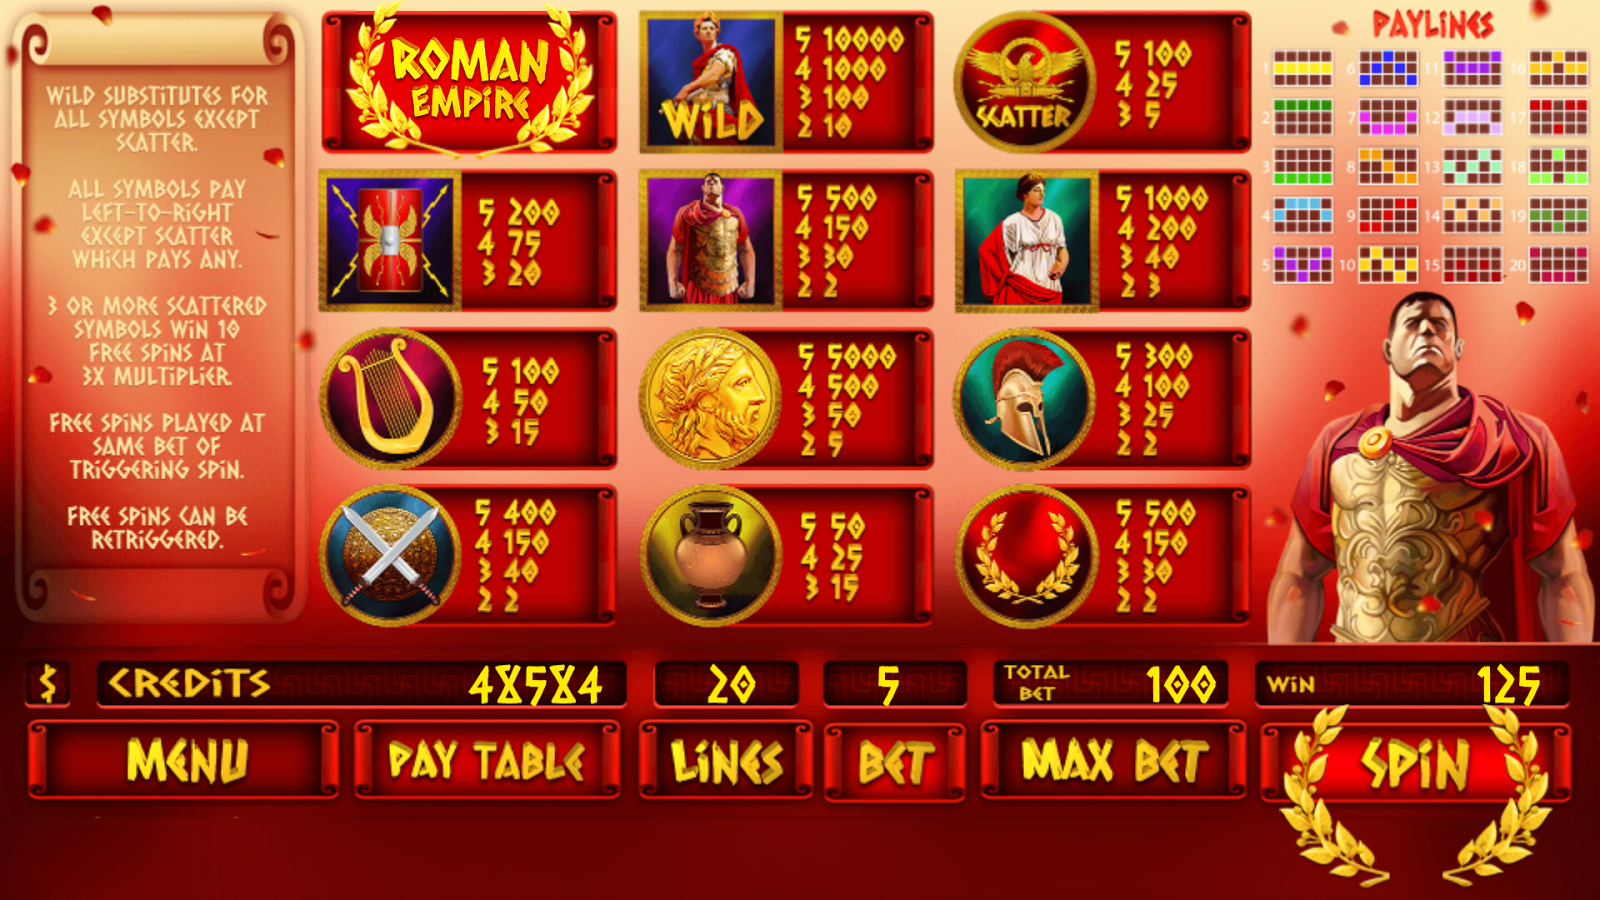 Roman Empire Slot Machine - Play the Online Version for Free